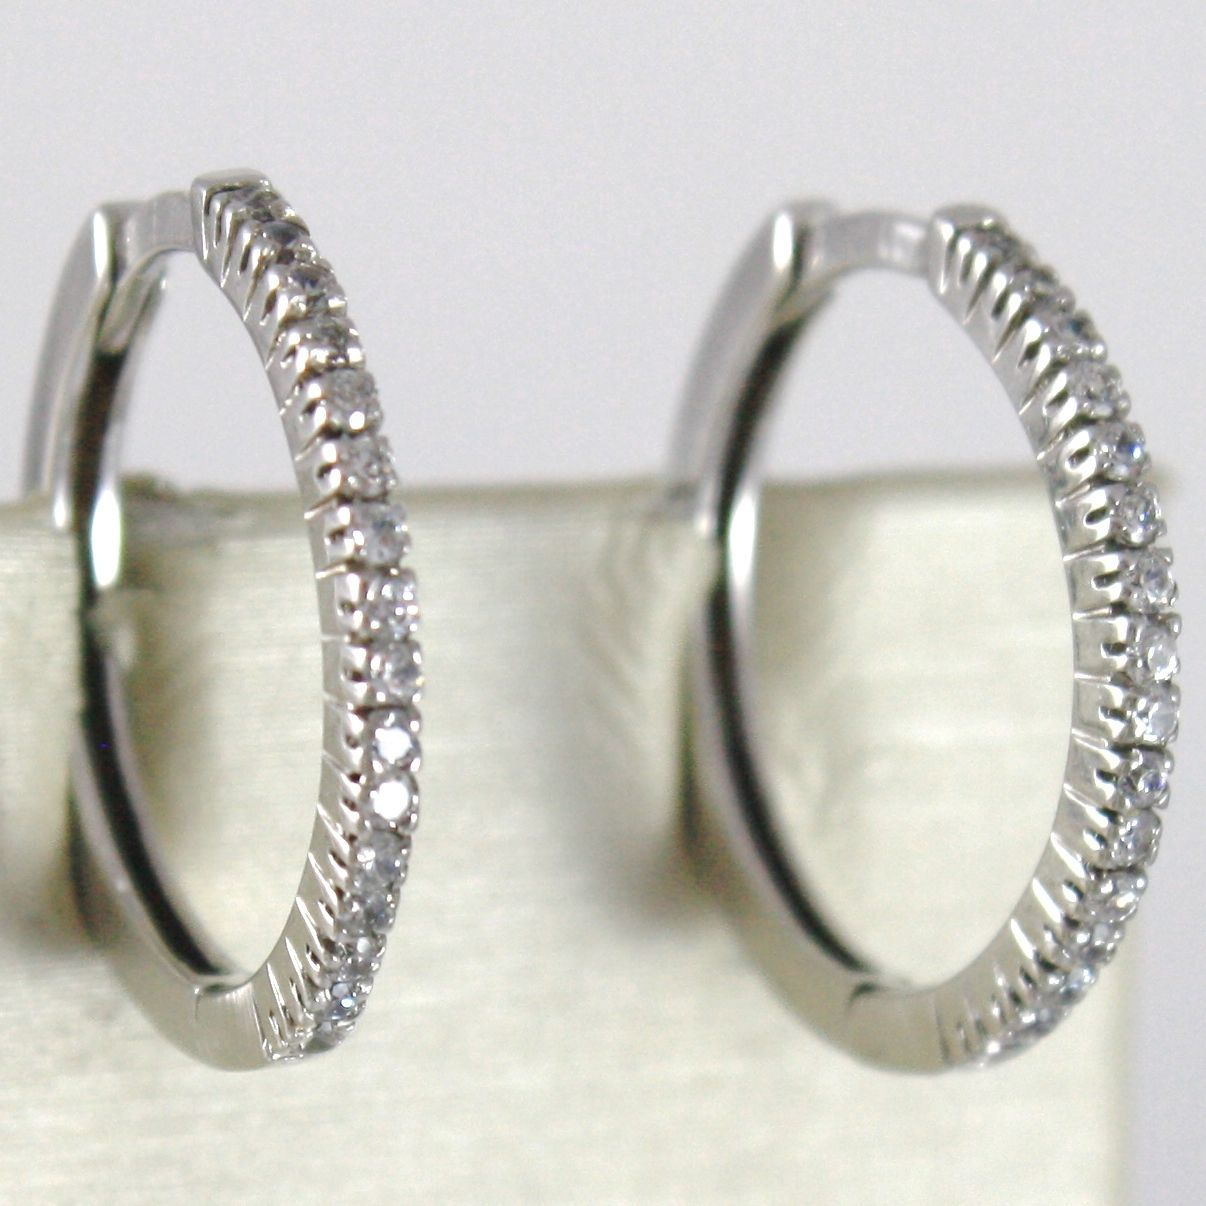 WHITE GOLD EARRINGS 750 18K CIRCLE, DIAMETER 1.9 CM, WIDTH 1 MM, ZIRCON